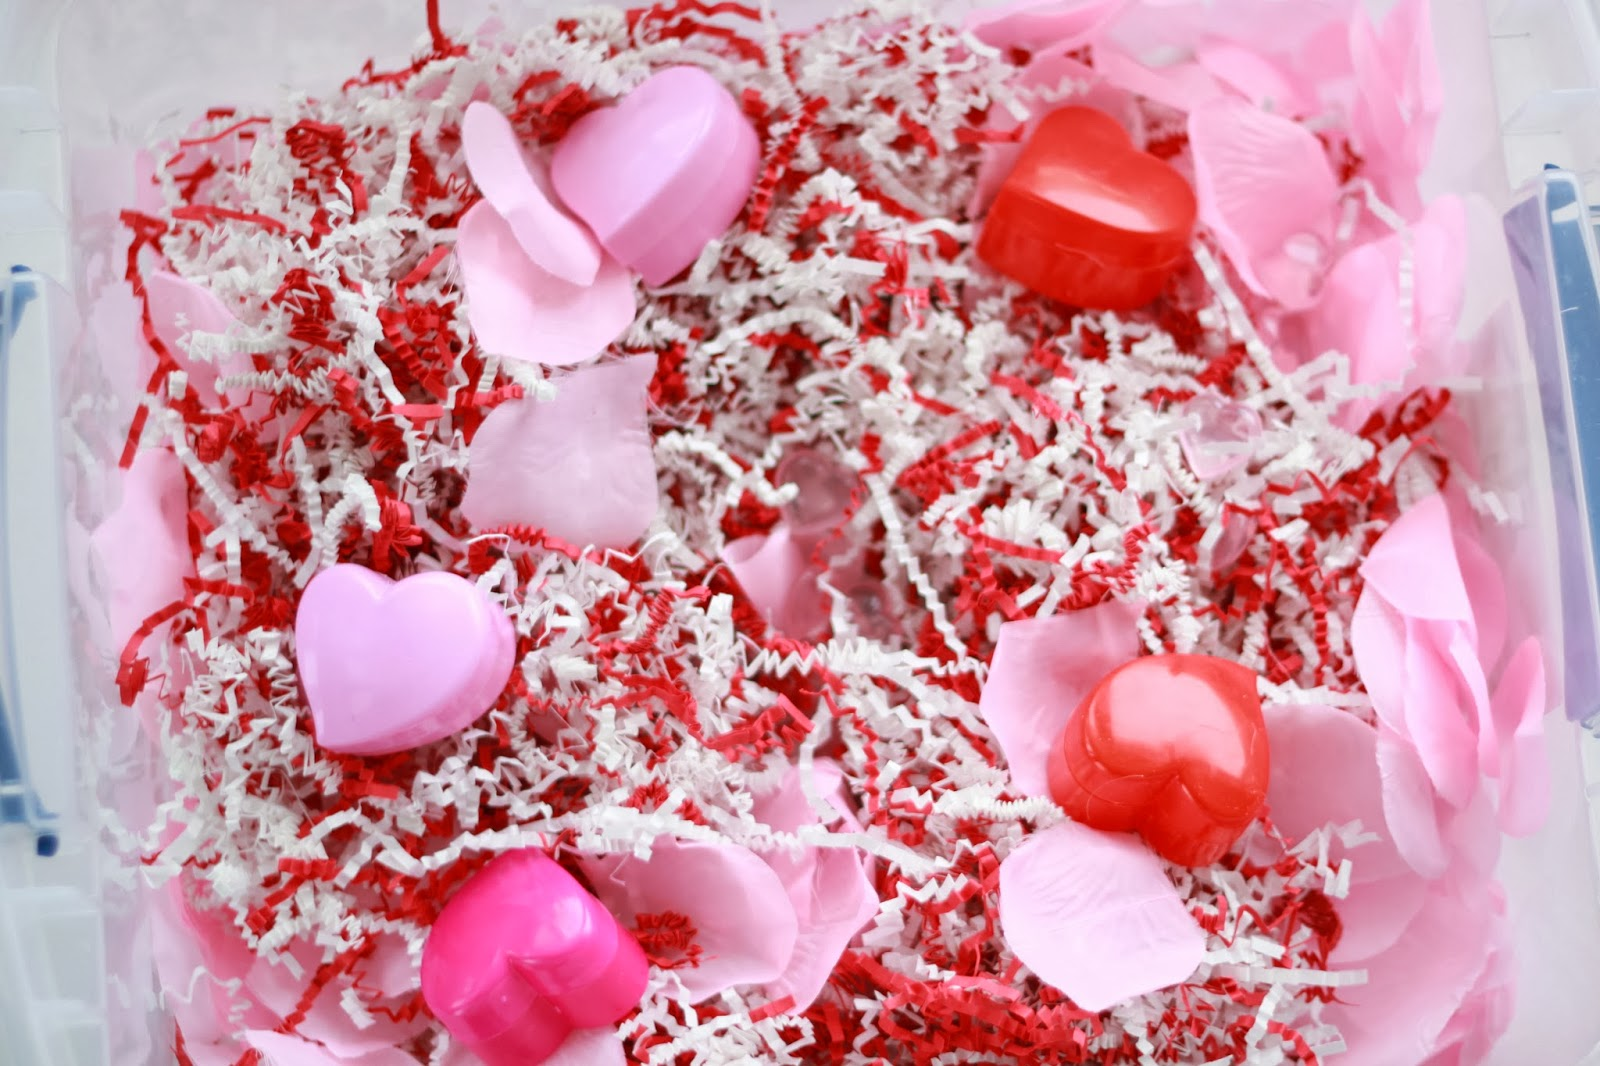 A Messy Valentine's Day Sensory Bin. Click for more #sensory bin ideas for #ValentinesDay